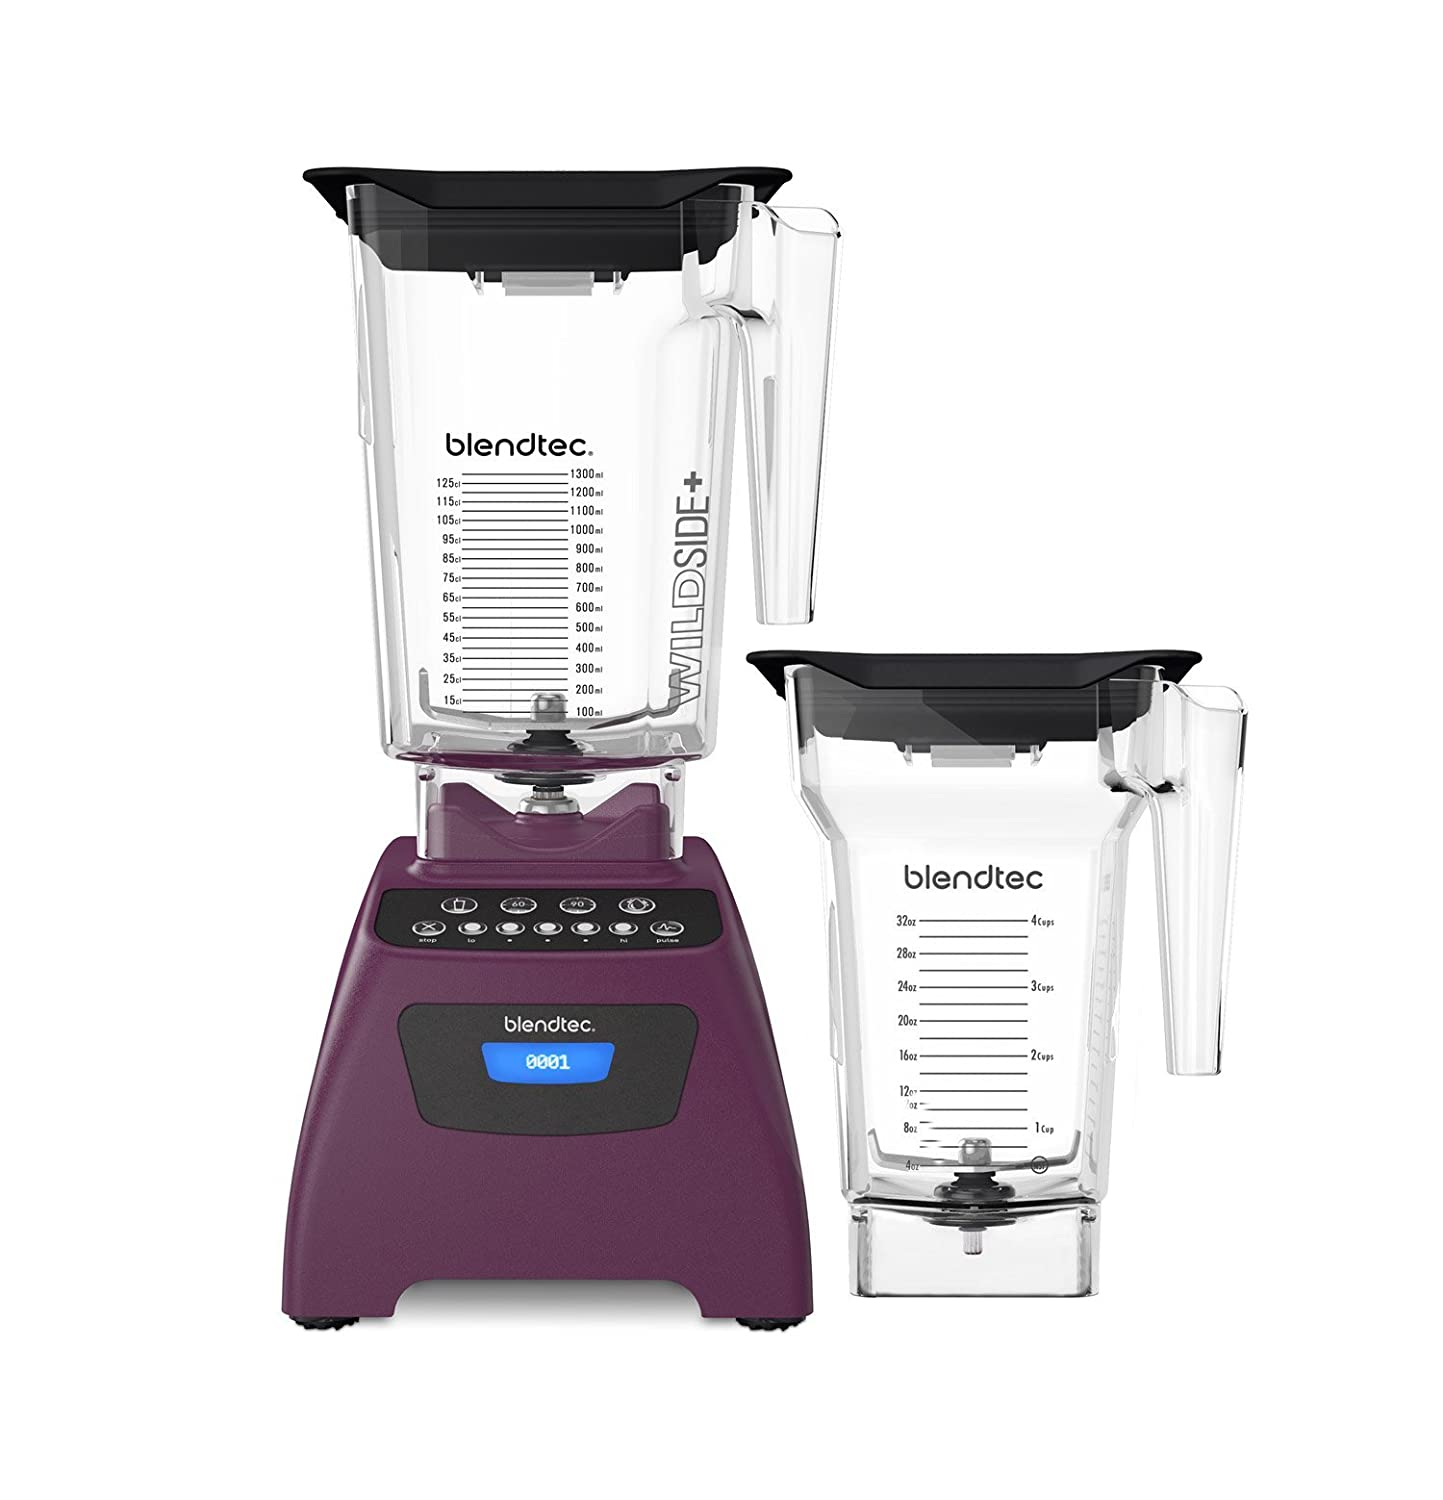 $399.99 (was $549.19) Blendtec C575A2318A-AMAZON Classic 575 Blender Bundle with Wild Side+ Jar and Four Side Jar, Orchid